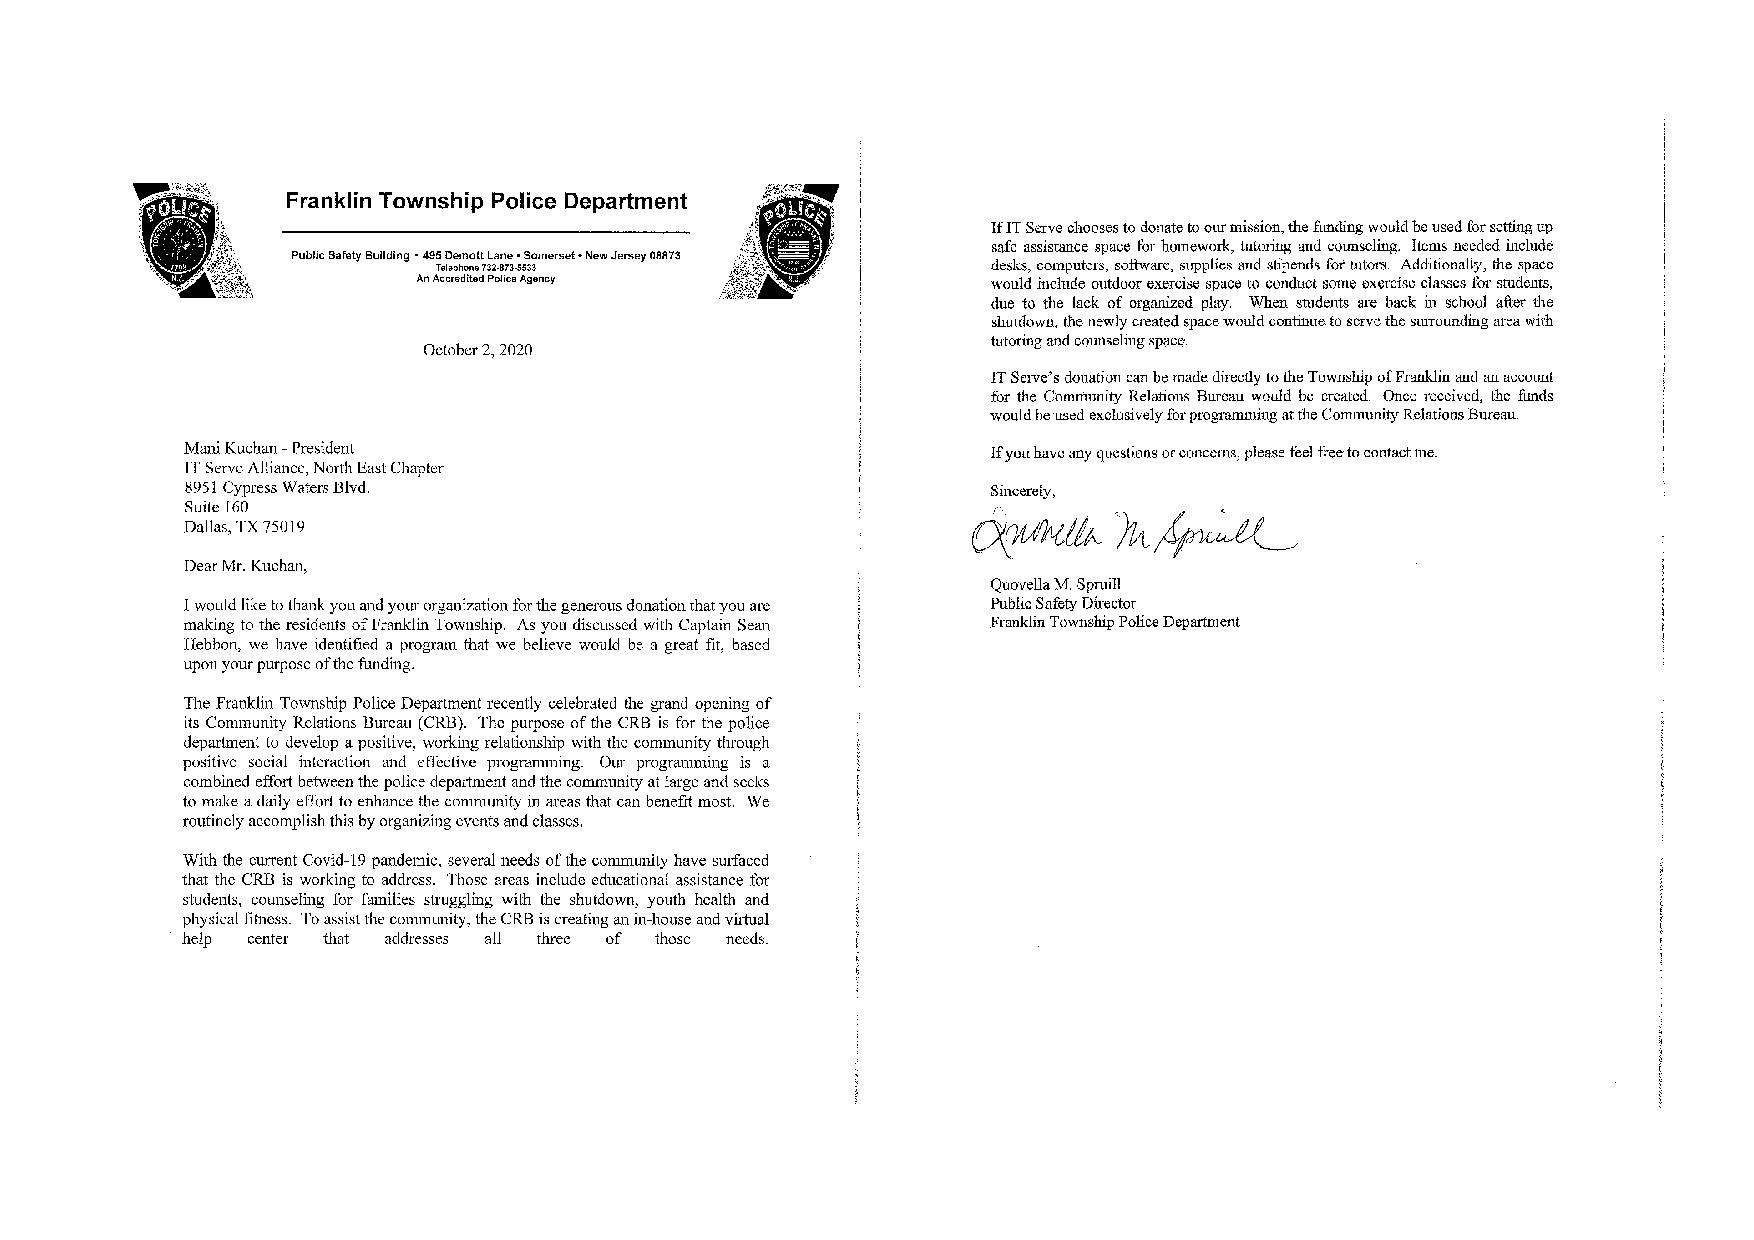 Received a Thank You letter From Franklin Township Police Department